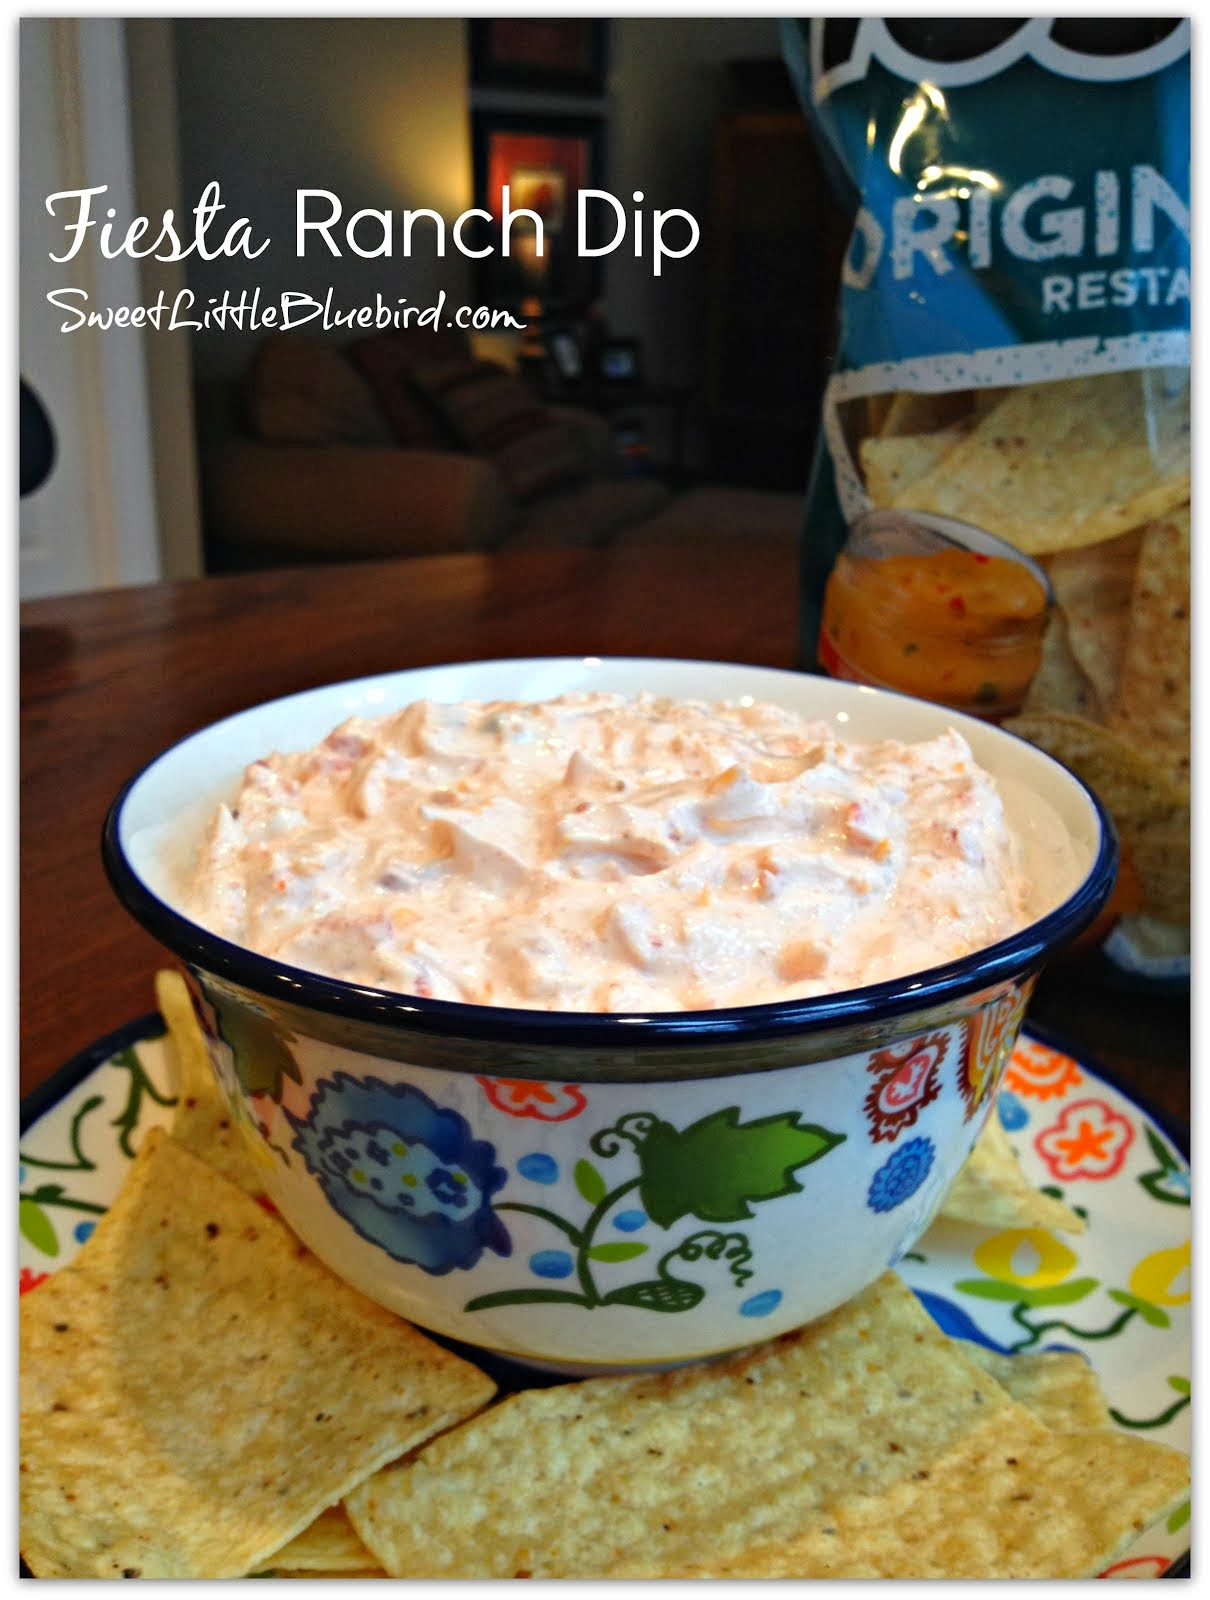 Fiesta Ranch Dip - Only 4 Ingredients!